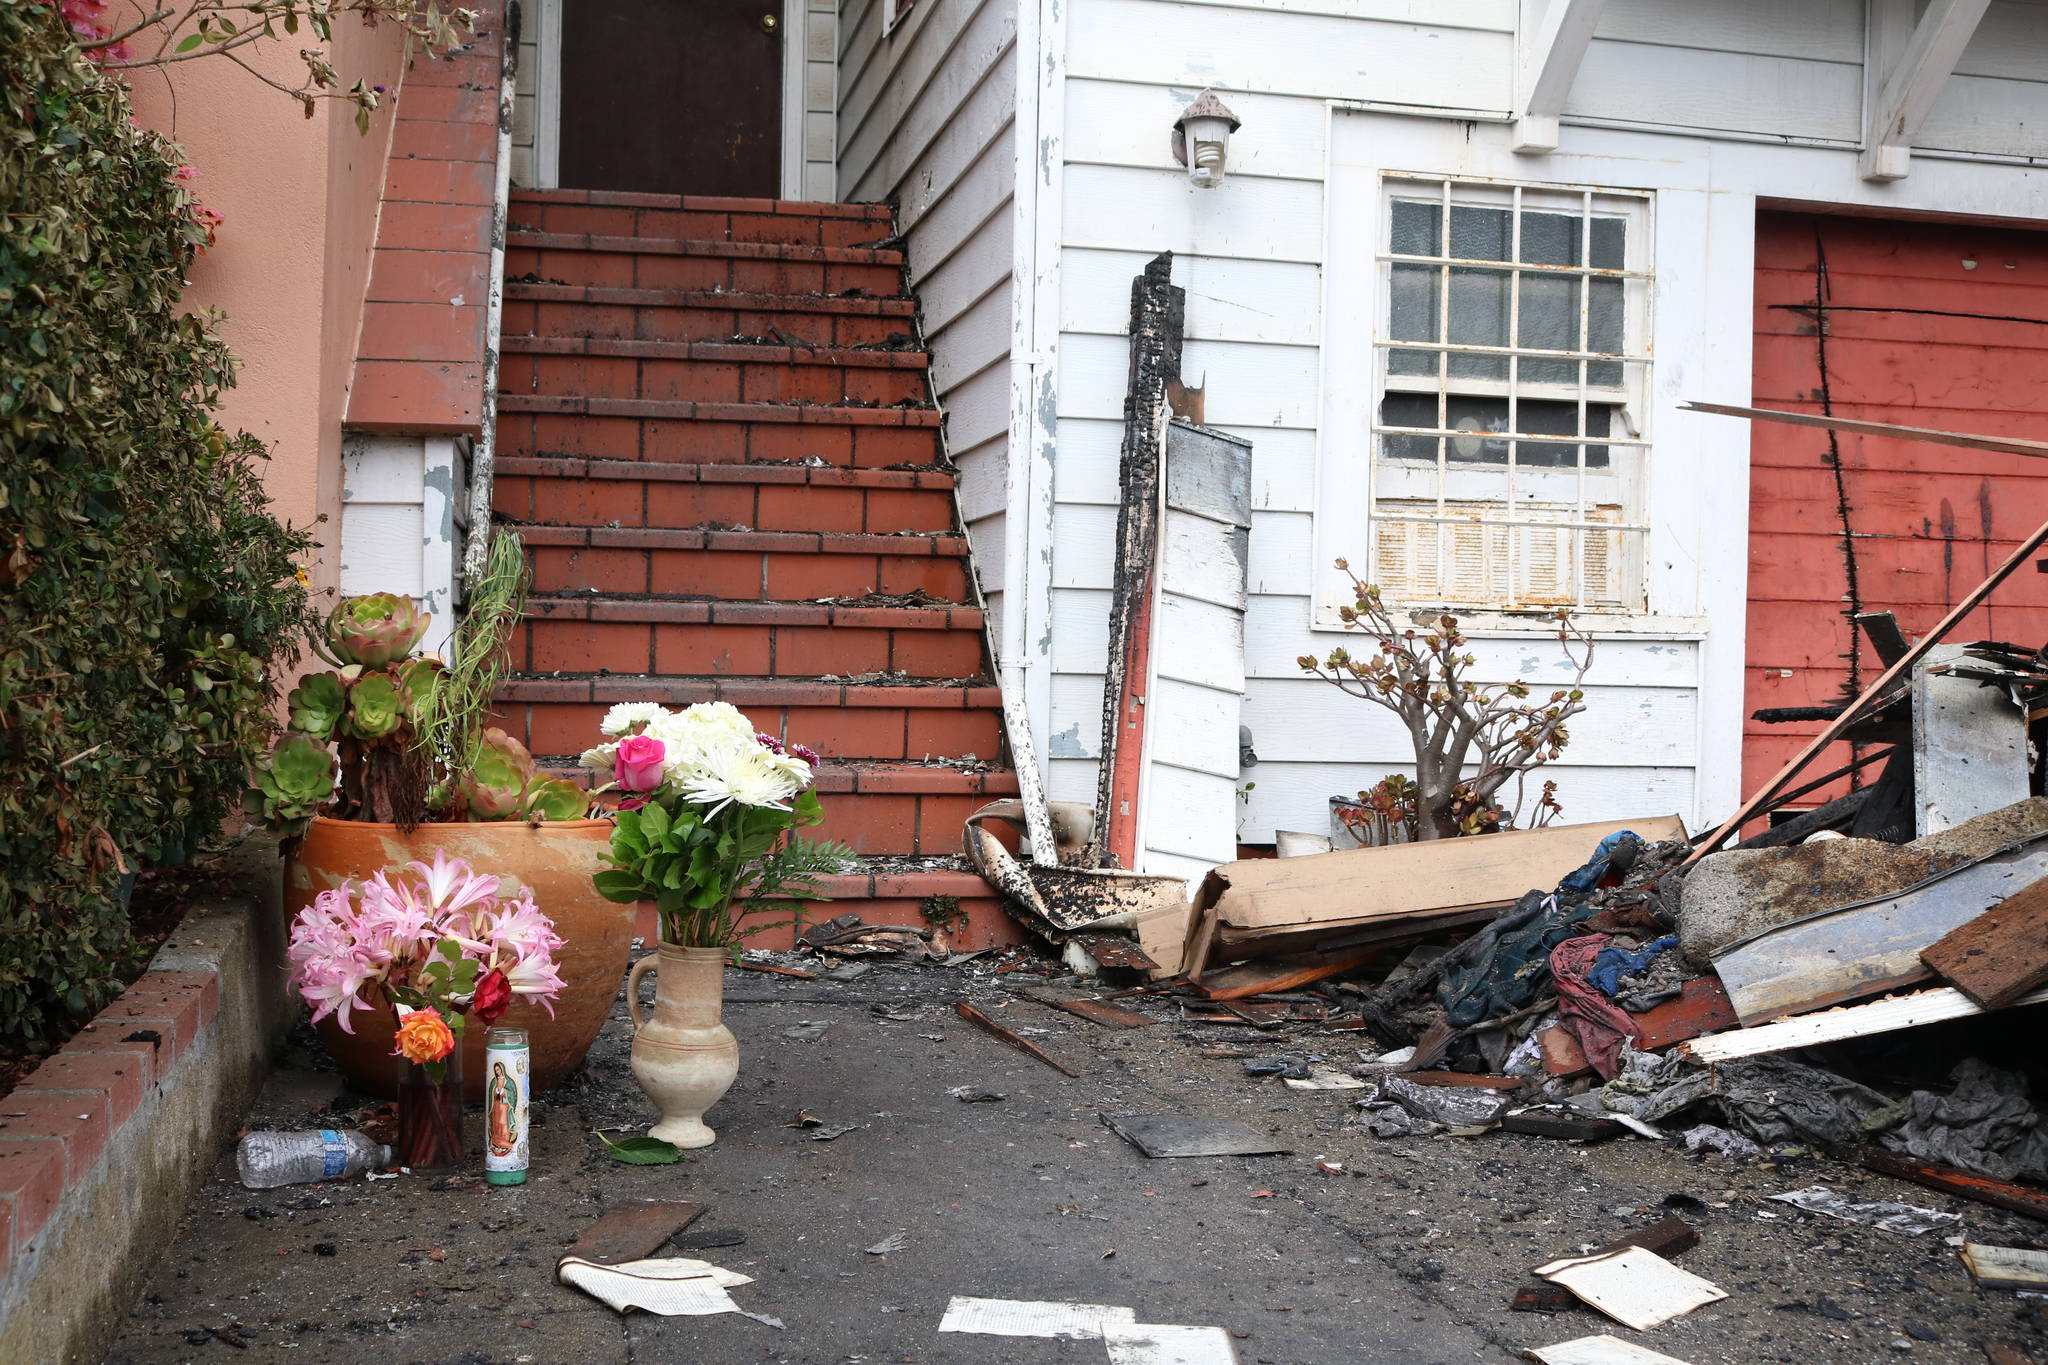 Flowers and remembrances collected at the home Wednesday morning. (Cody McFarland/Special to the S.F. Examiner)